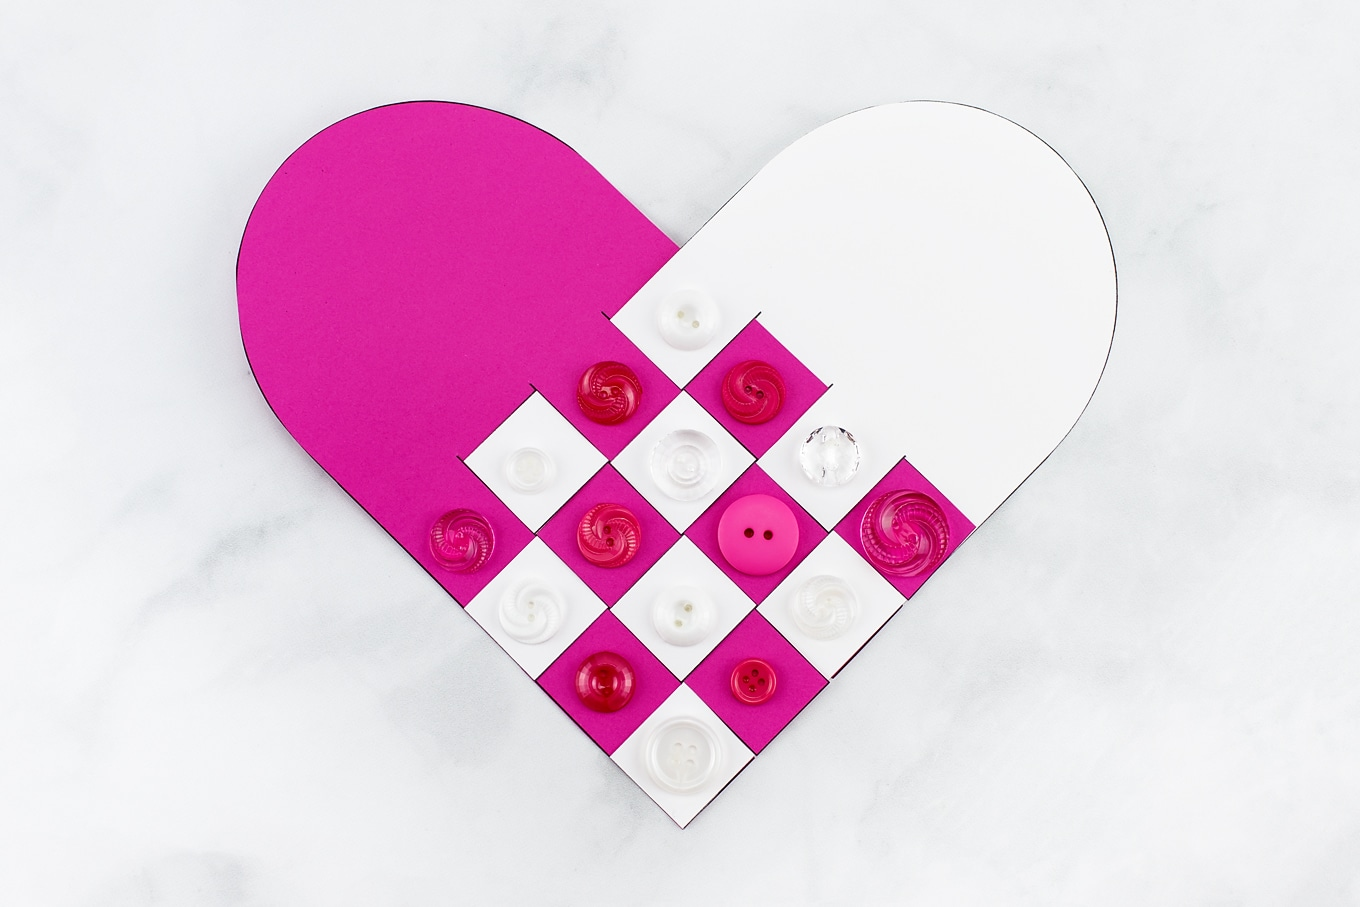 Hot Pink and White Woven Heart Craft with Buttons